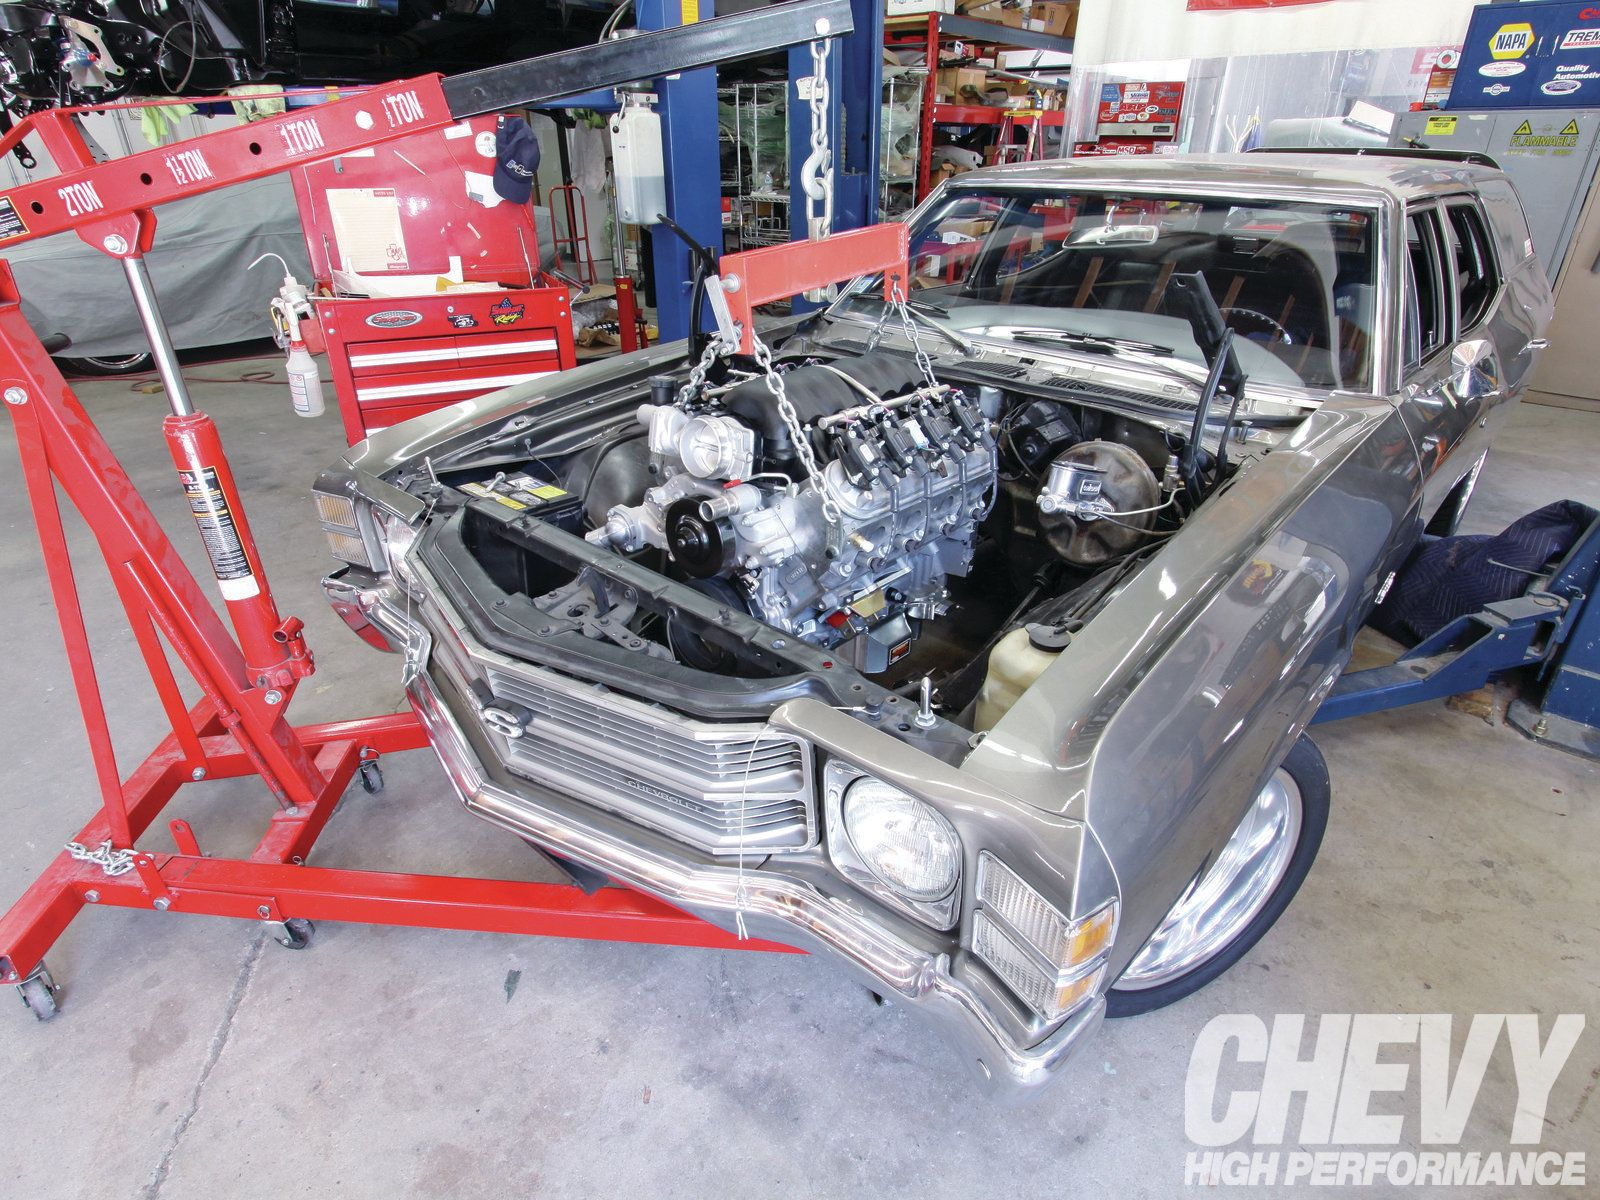 An ls swap can infuse new life into classic muscle